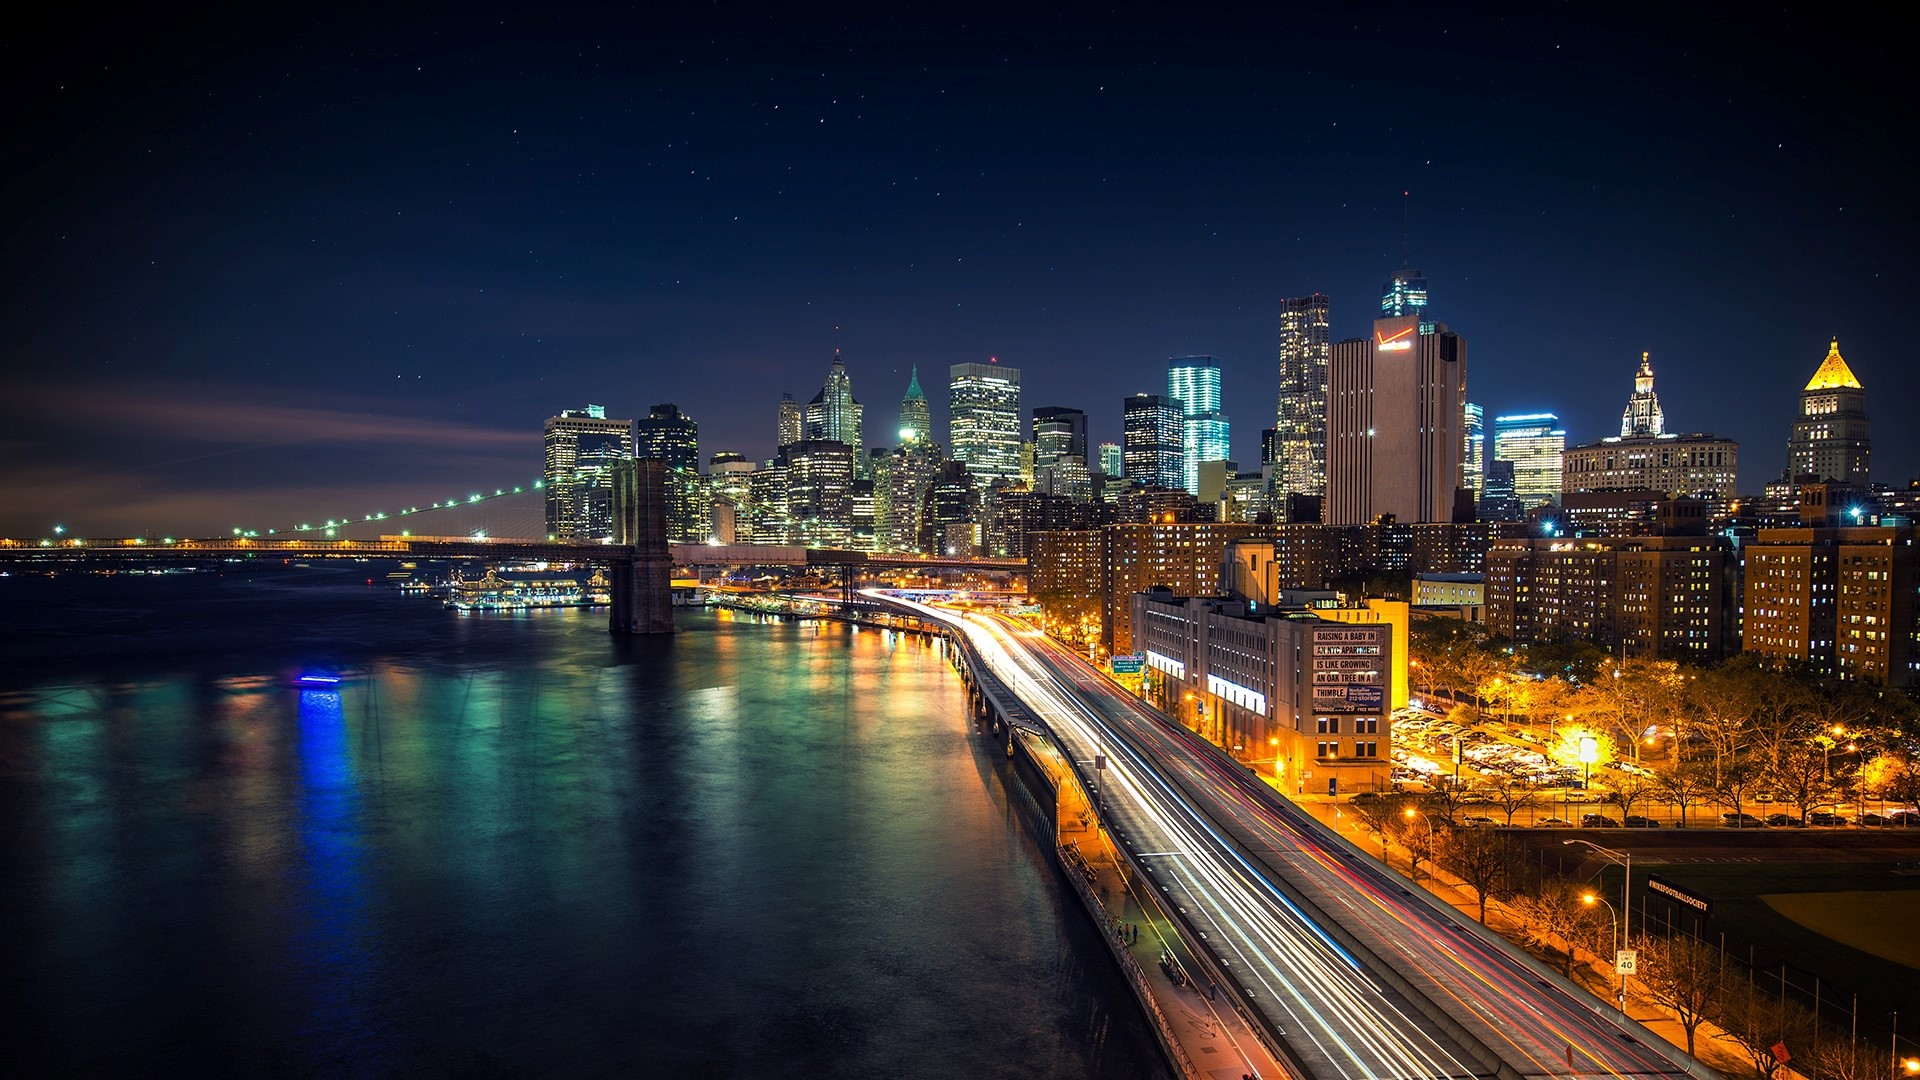 Download City Night View Wallpaper Gallery